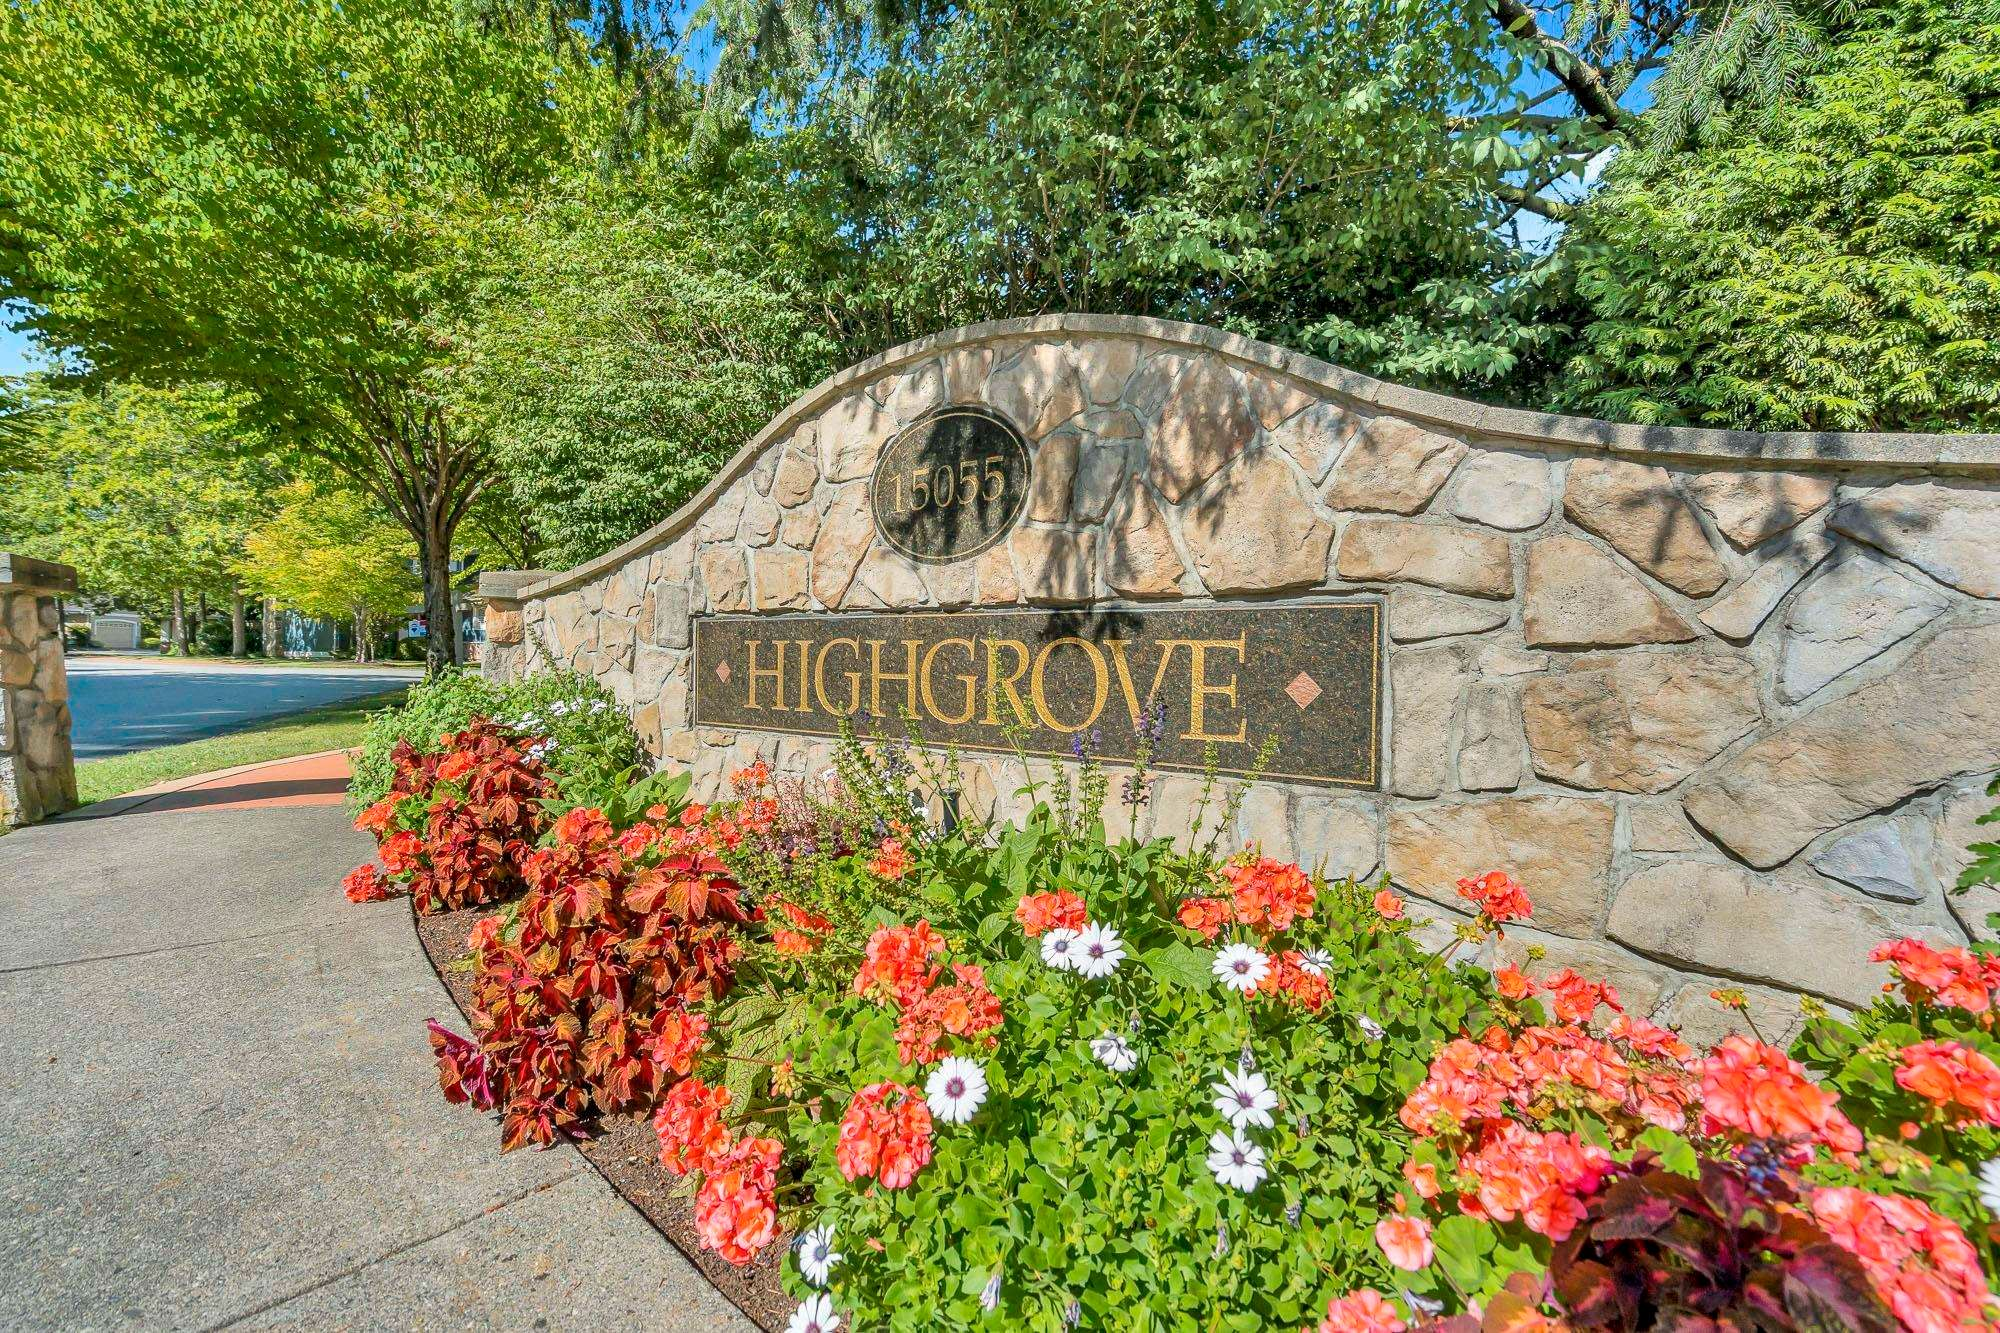 """Main Photo: 42 15055 20 Avenue in Surrey: Sunnyside Park Surrey Townhouse for sale in """"HIGHGROVE II"""" (South Surrey White Rock)  : MLS®# R2624988"""